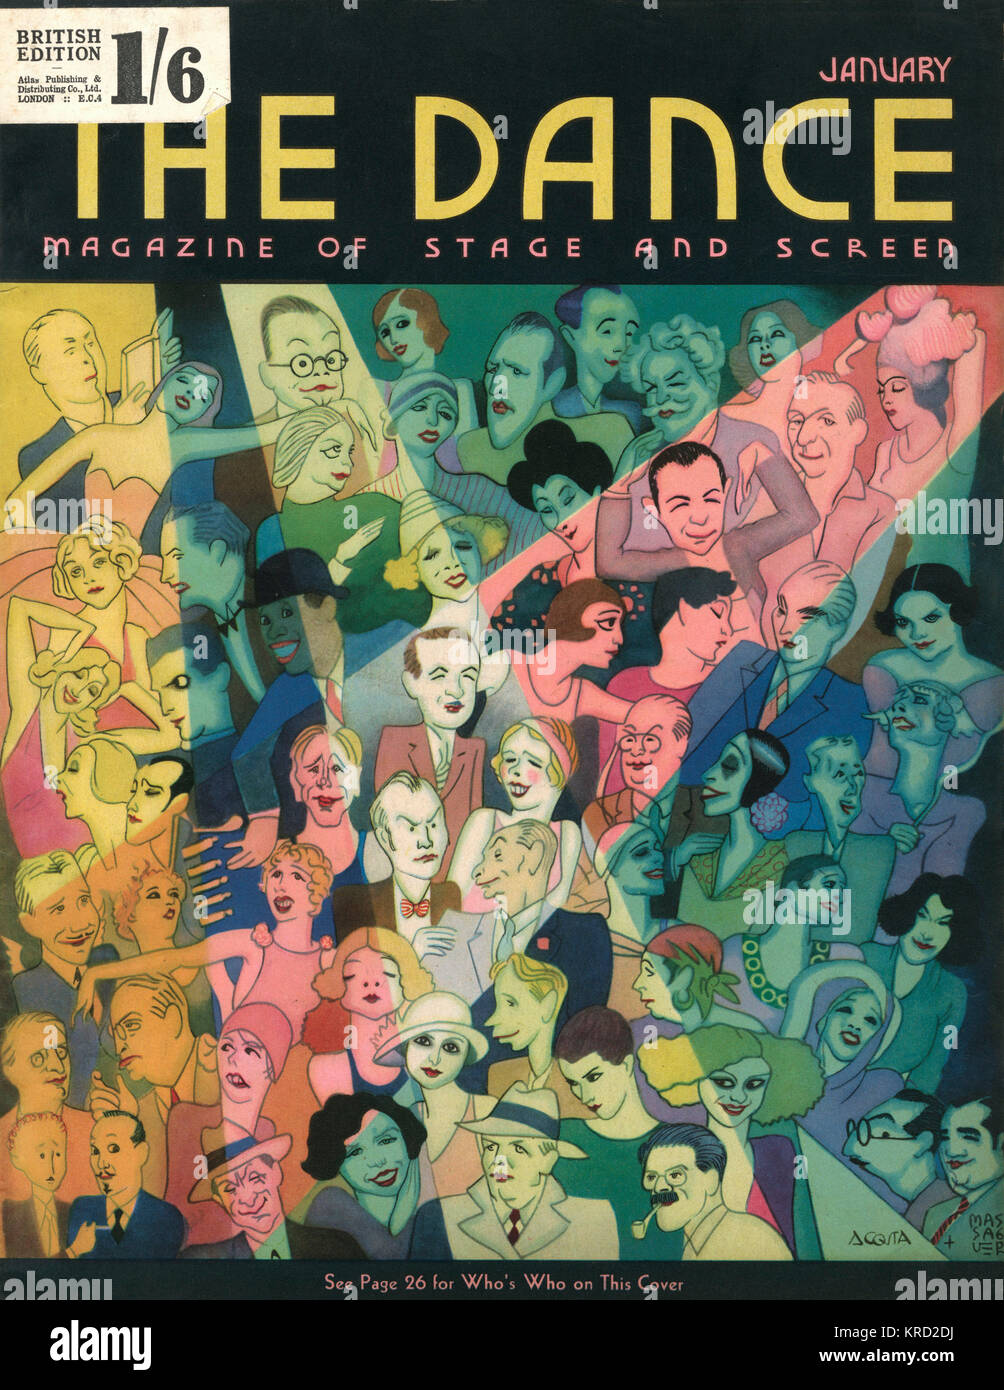 Front cover of The Dance magazine featuring a stylised illustration of numerous personalities of the New York stage - Stock Image